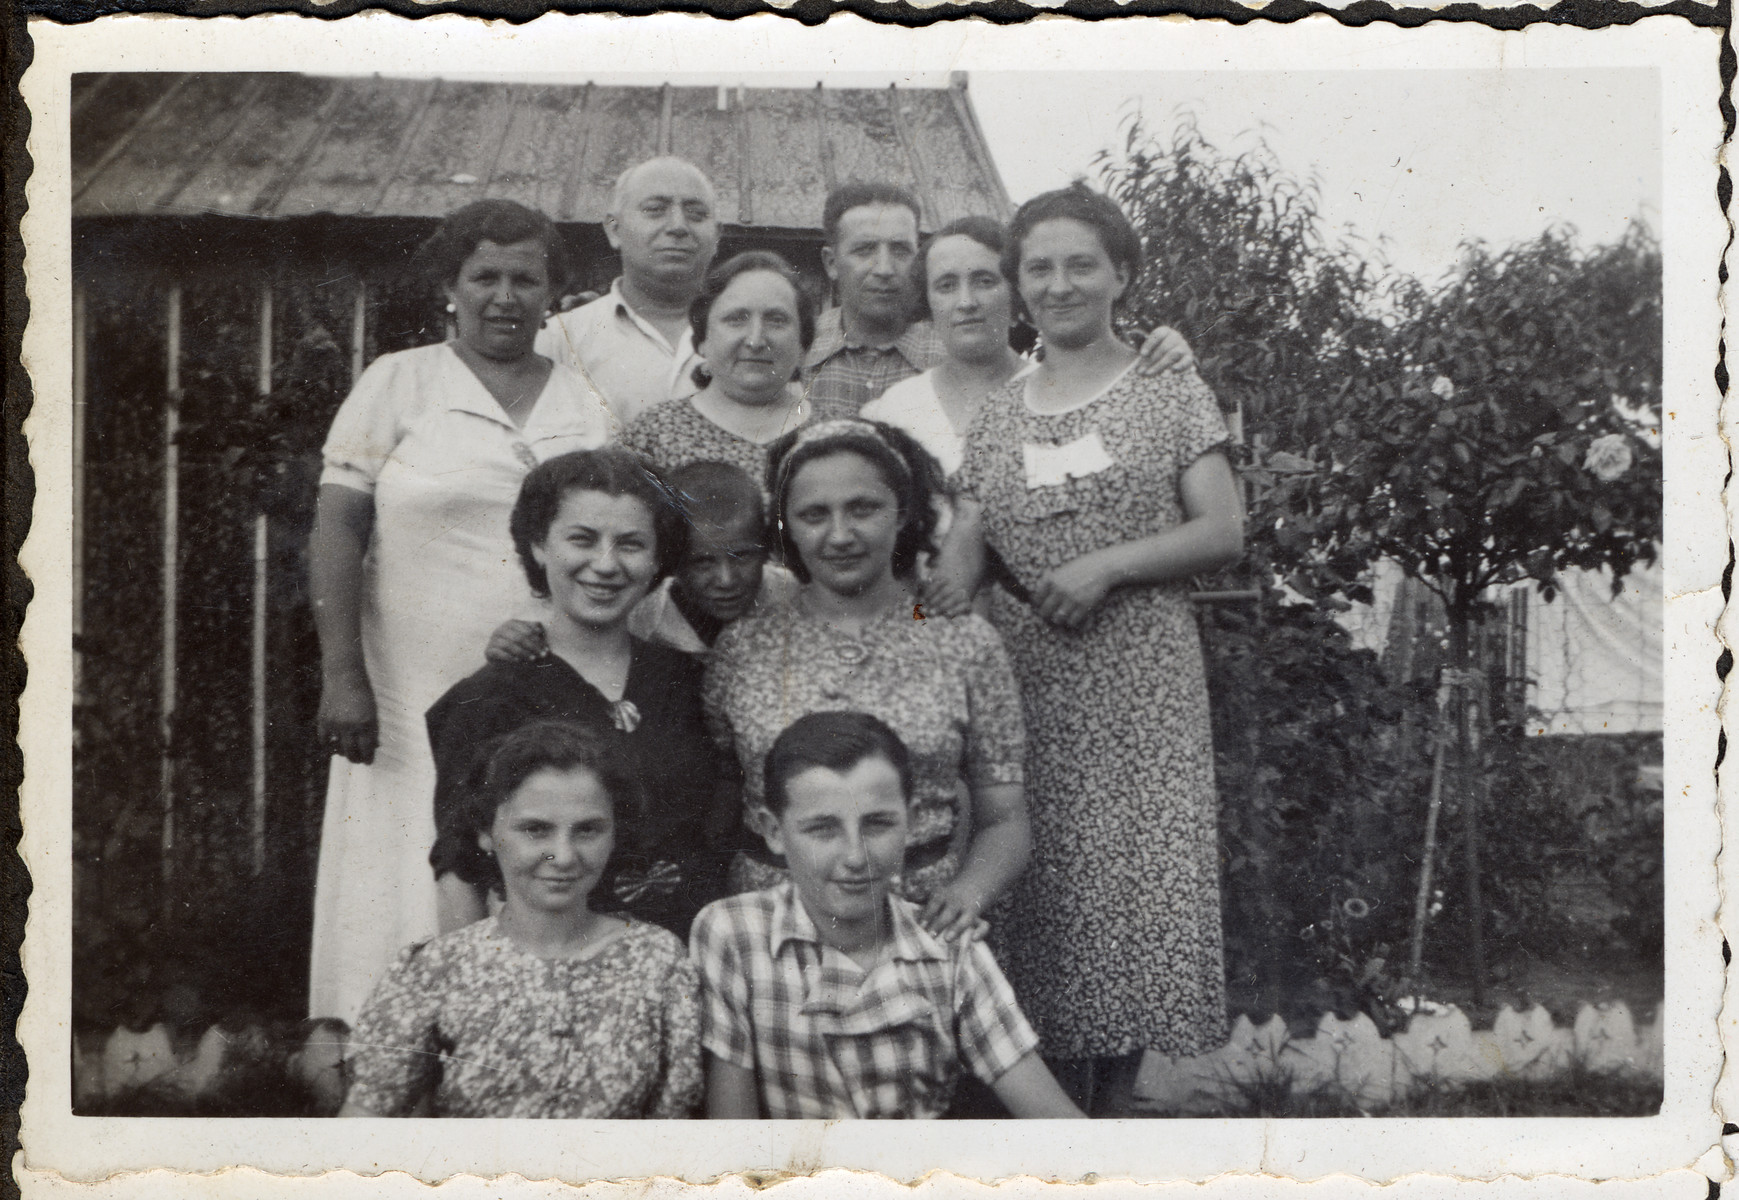 Group portrait of a prewar Jewish family [possibly in Sighet].  This is one photograph from the album of Rosalia Dratler Roiter.  She later was deported to and perished at Auschwitz.